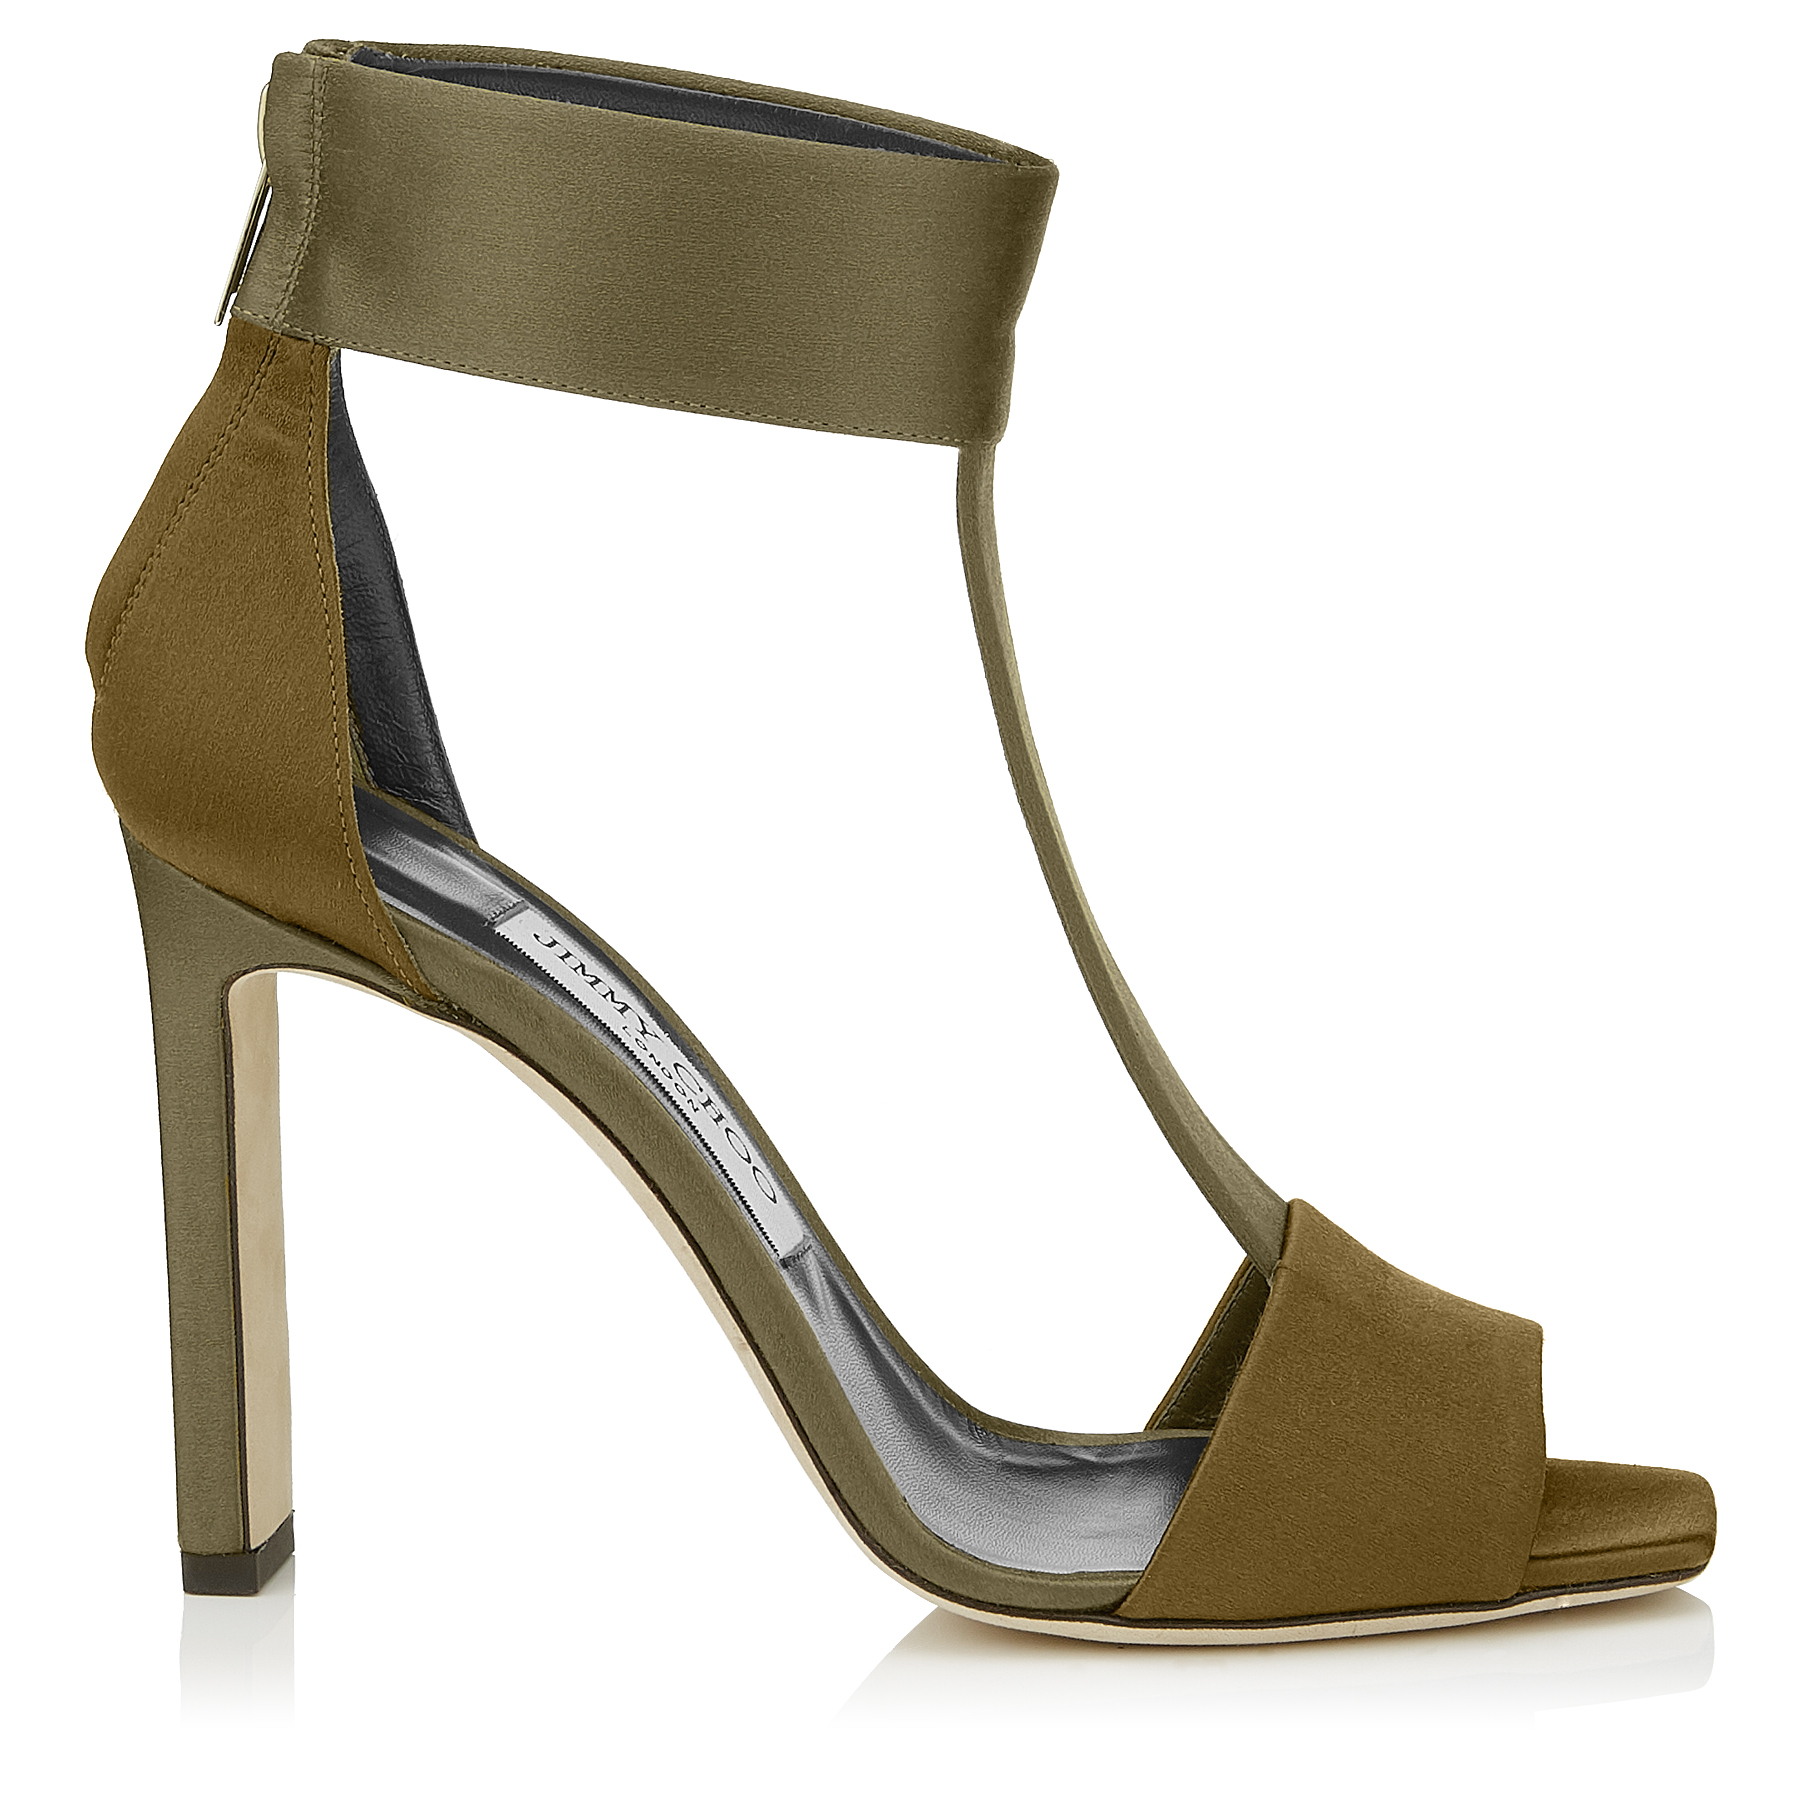 BETHEL 100 Olive Mix Satin Sandals by Jimmy Choo